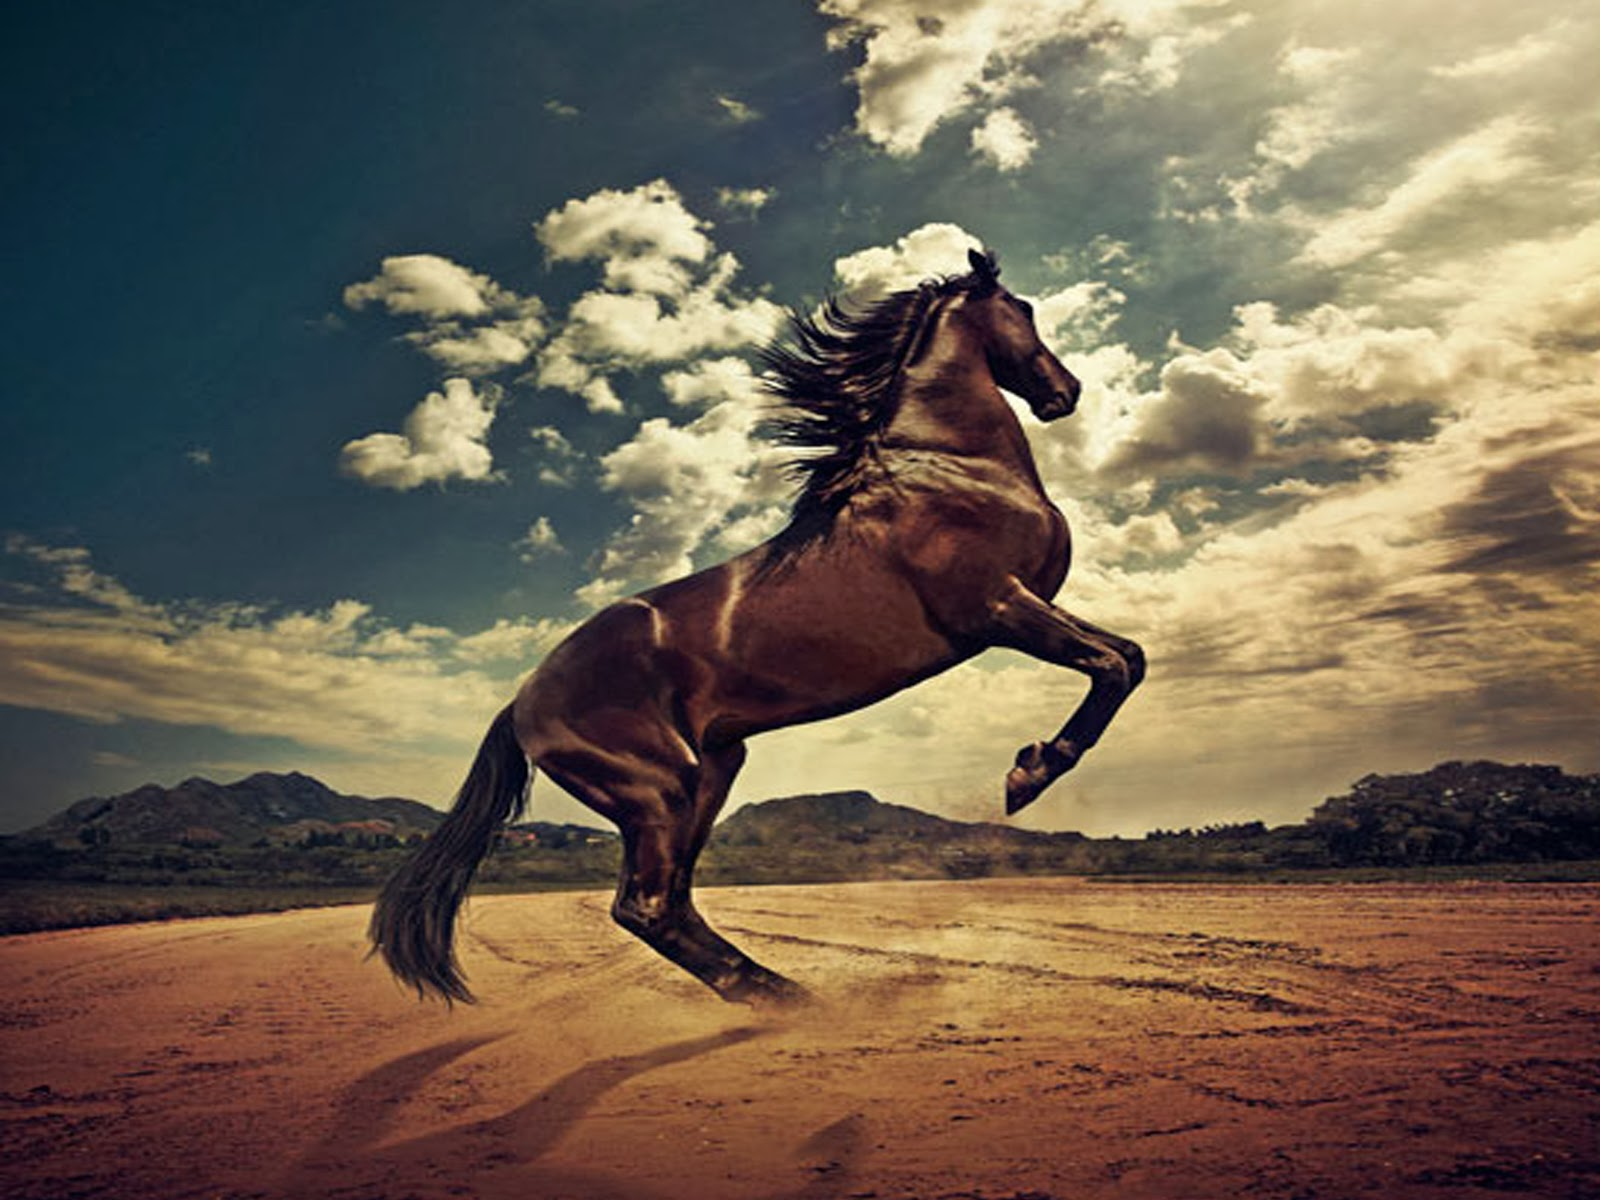 hd wallpapers desktop horse free